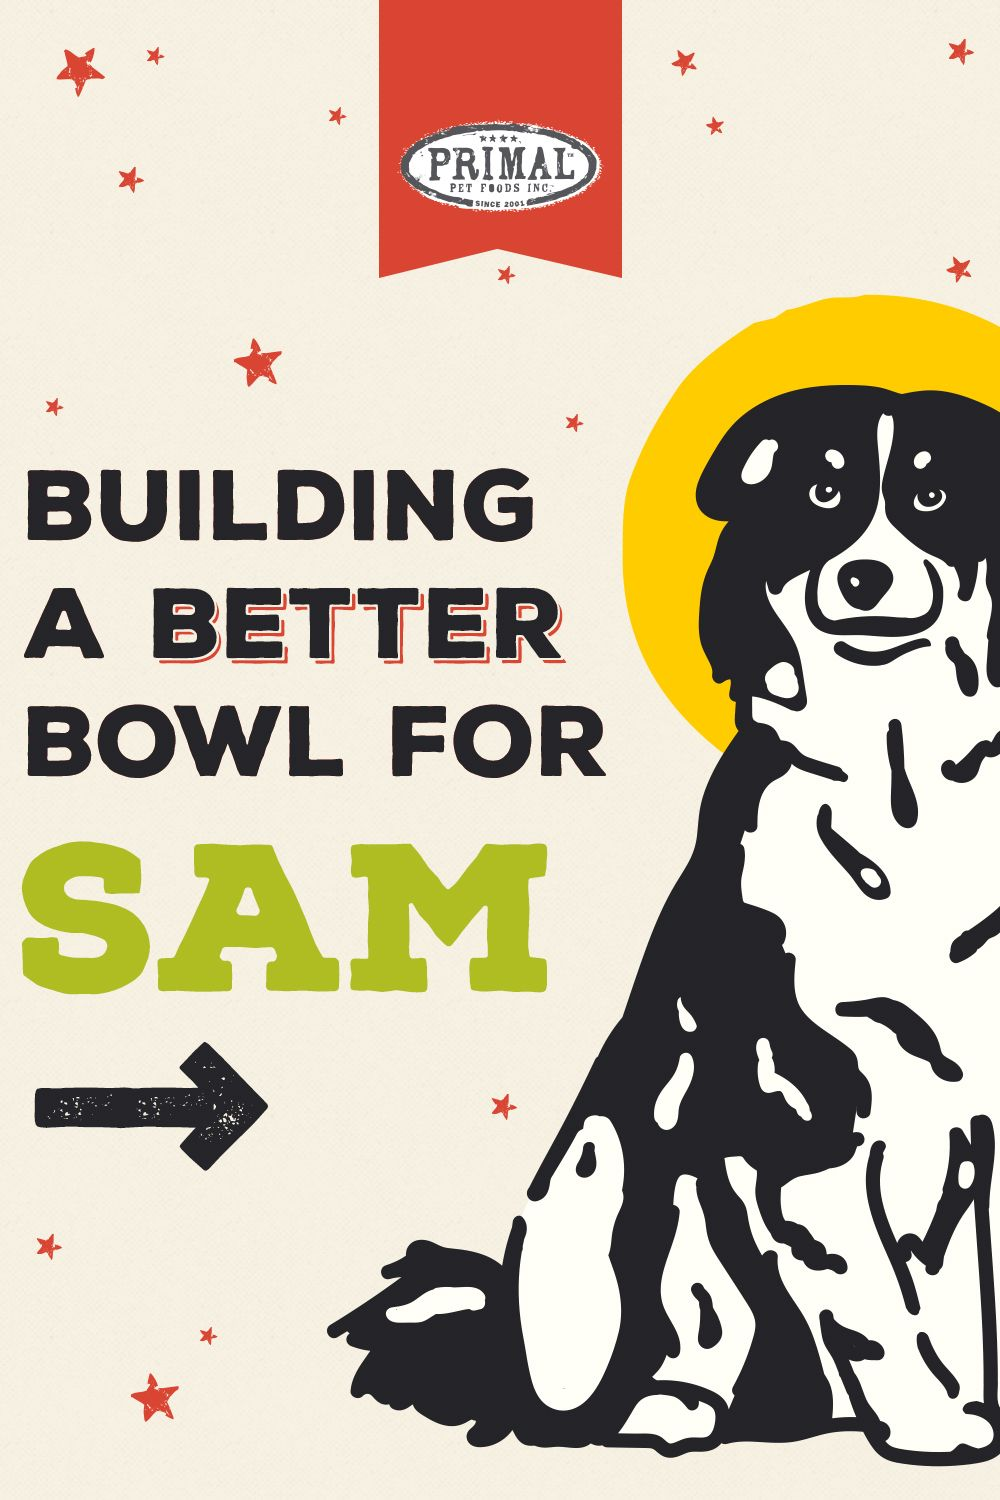 Building a better bowl for sam a working example of